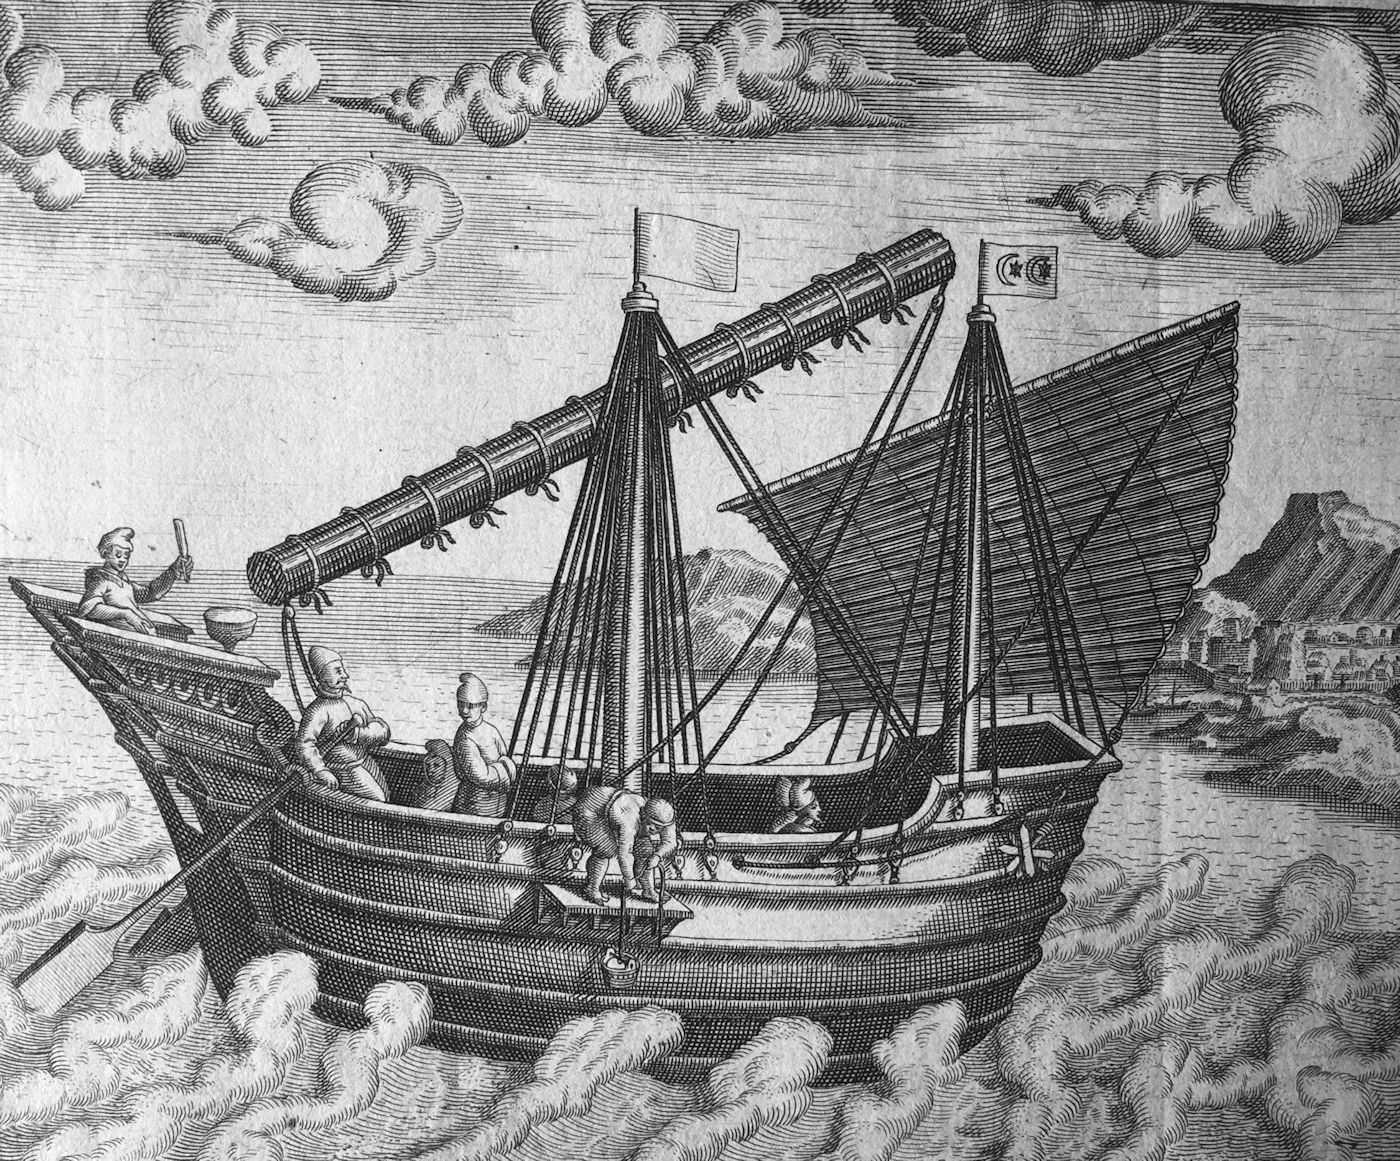 Theodore de Bry 'Navigational vessel of China' (from Latin edition of Les Grands Voyages, Frankfurt, 1602), one of the earliest Western depictions of a junk (collection, Juan José Morales)